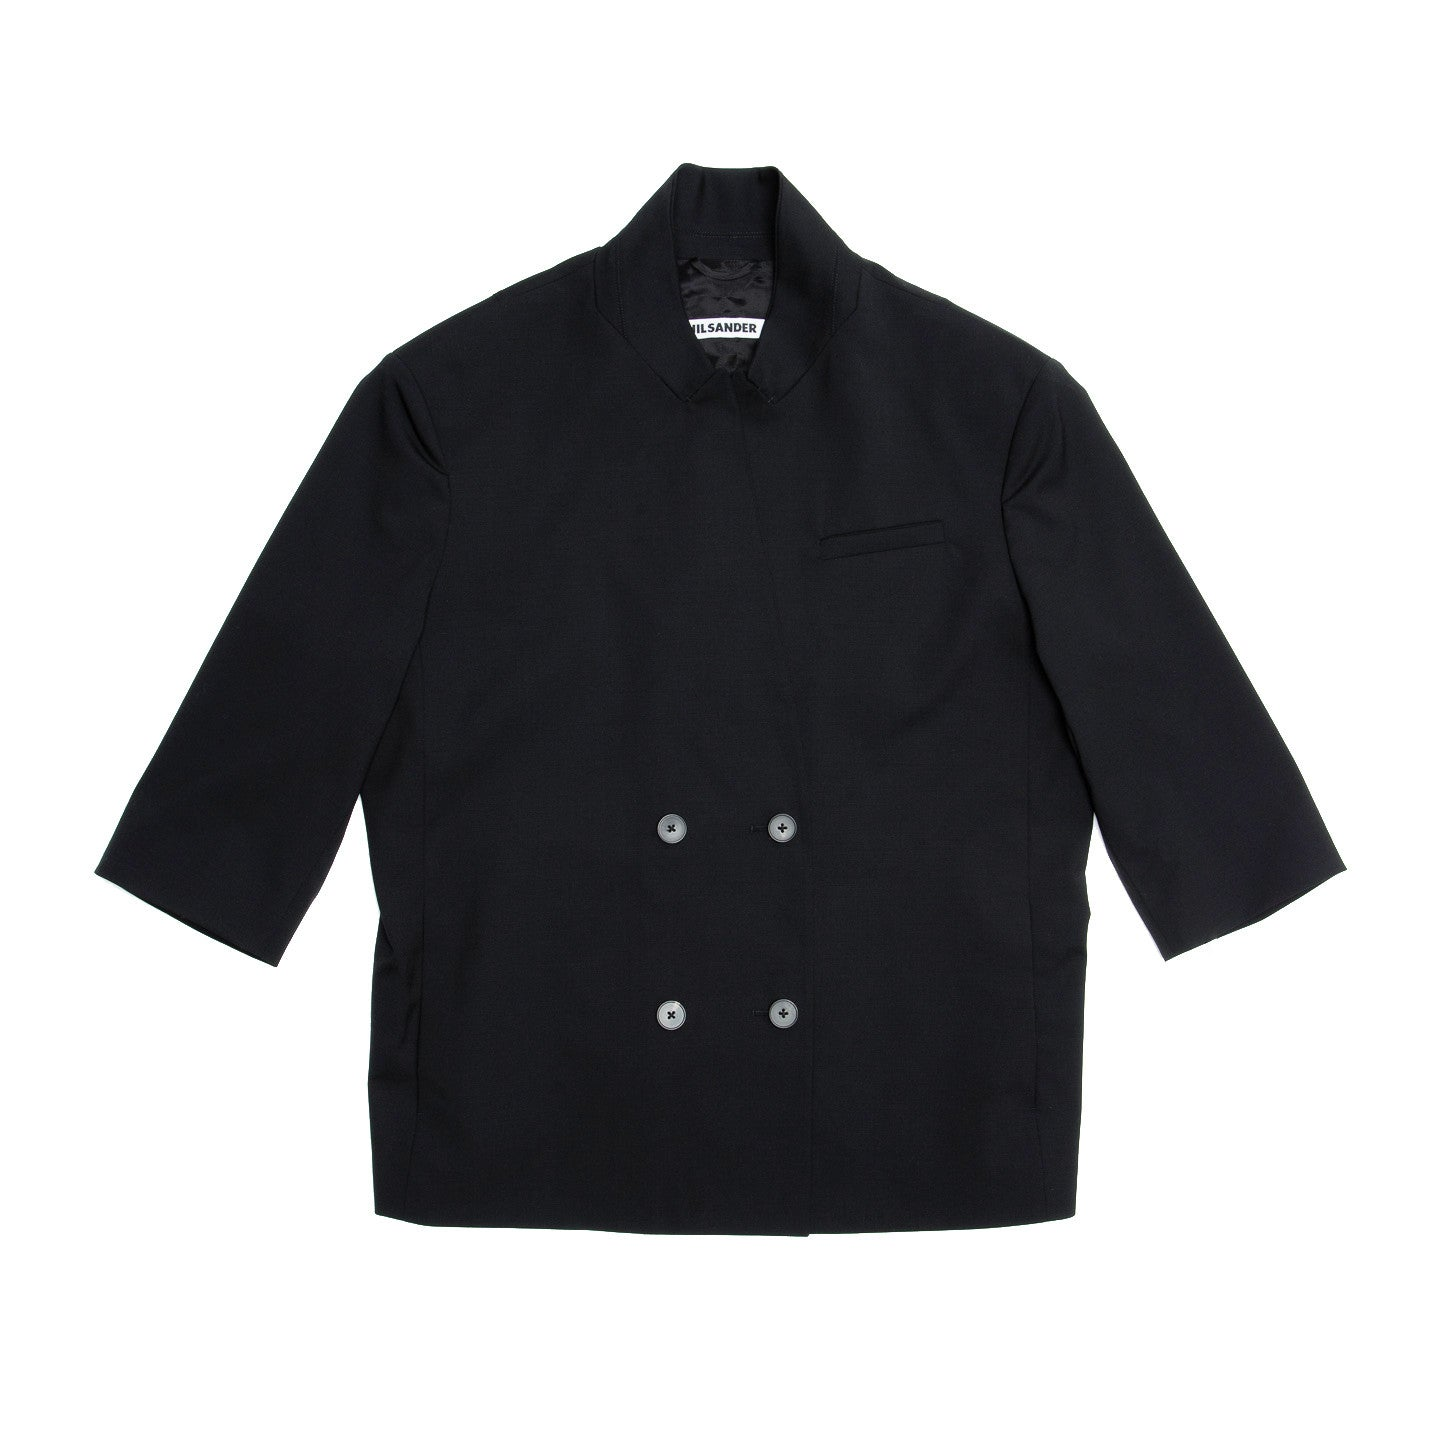 Find an authentic preowned Jil Sander Black Wool Boxy Jacket, size 42 (French) at BunnyJack, where a portion of every sale goes to charity.